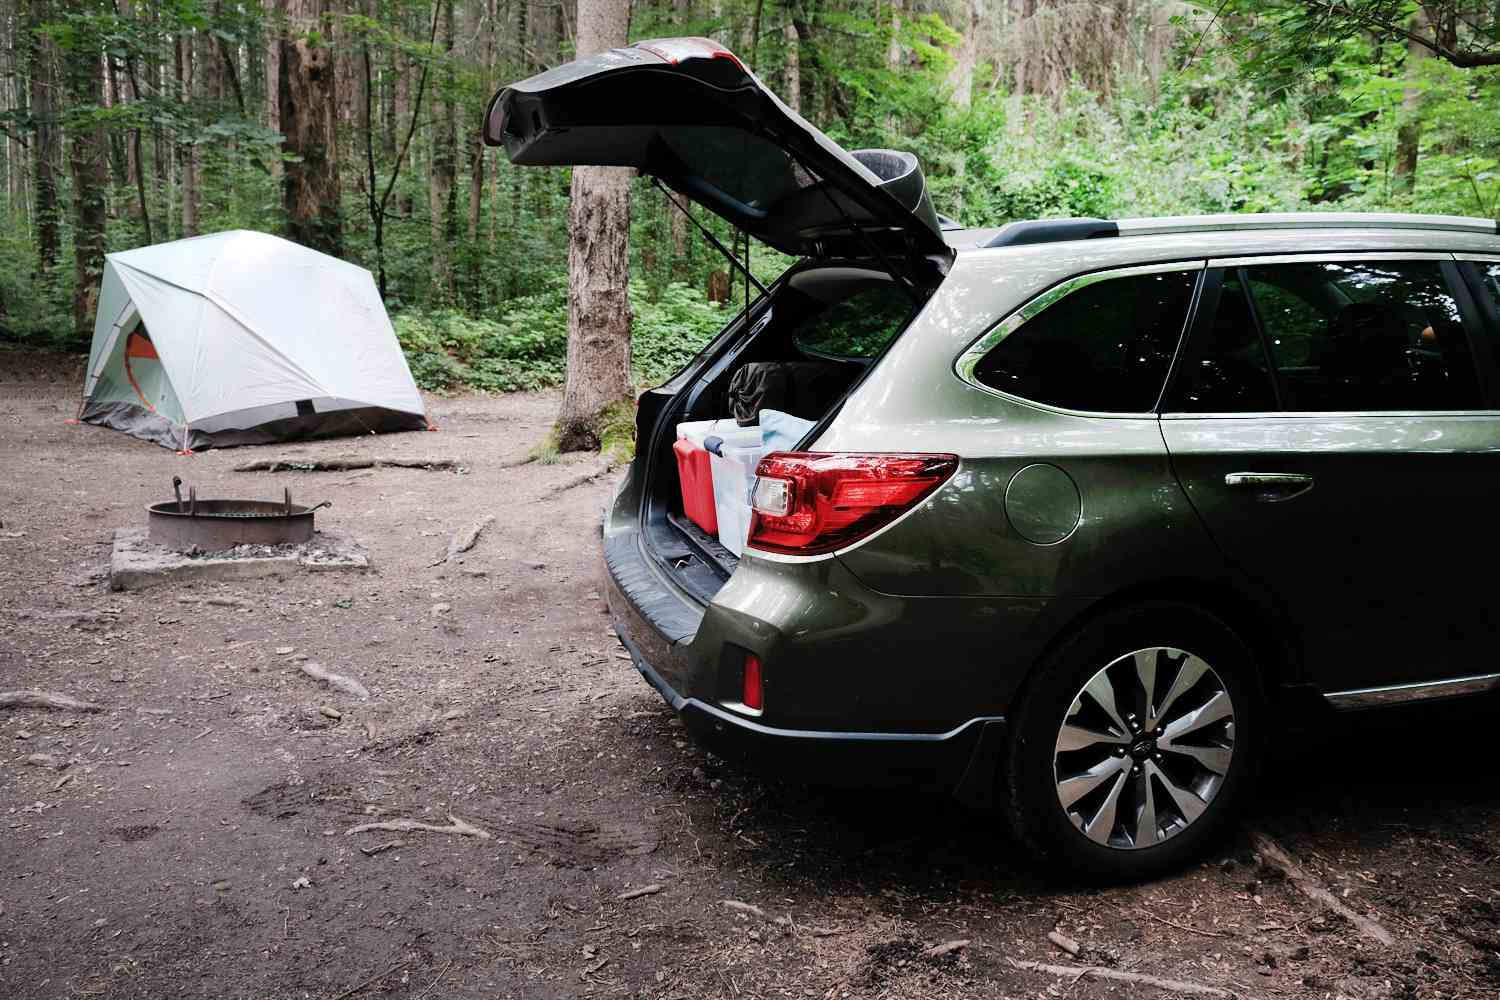 SUV with hatchback popped with camping tent in background nestled in woods